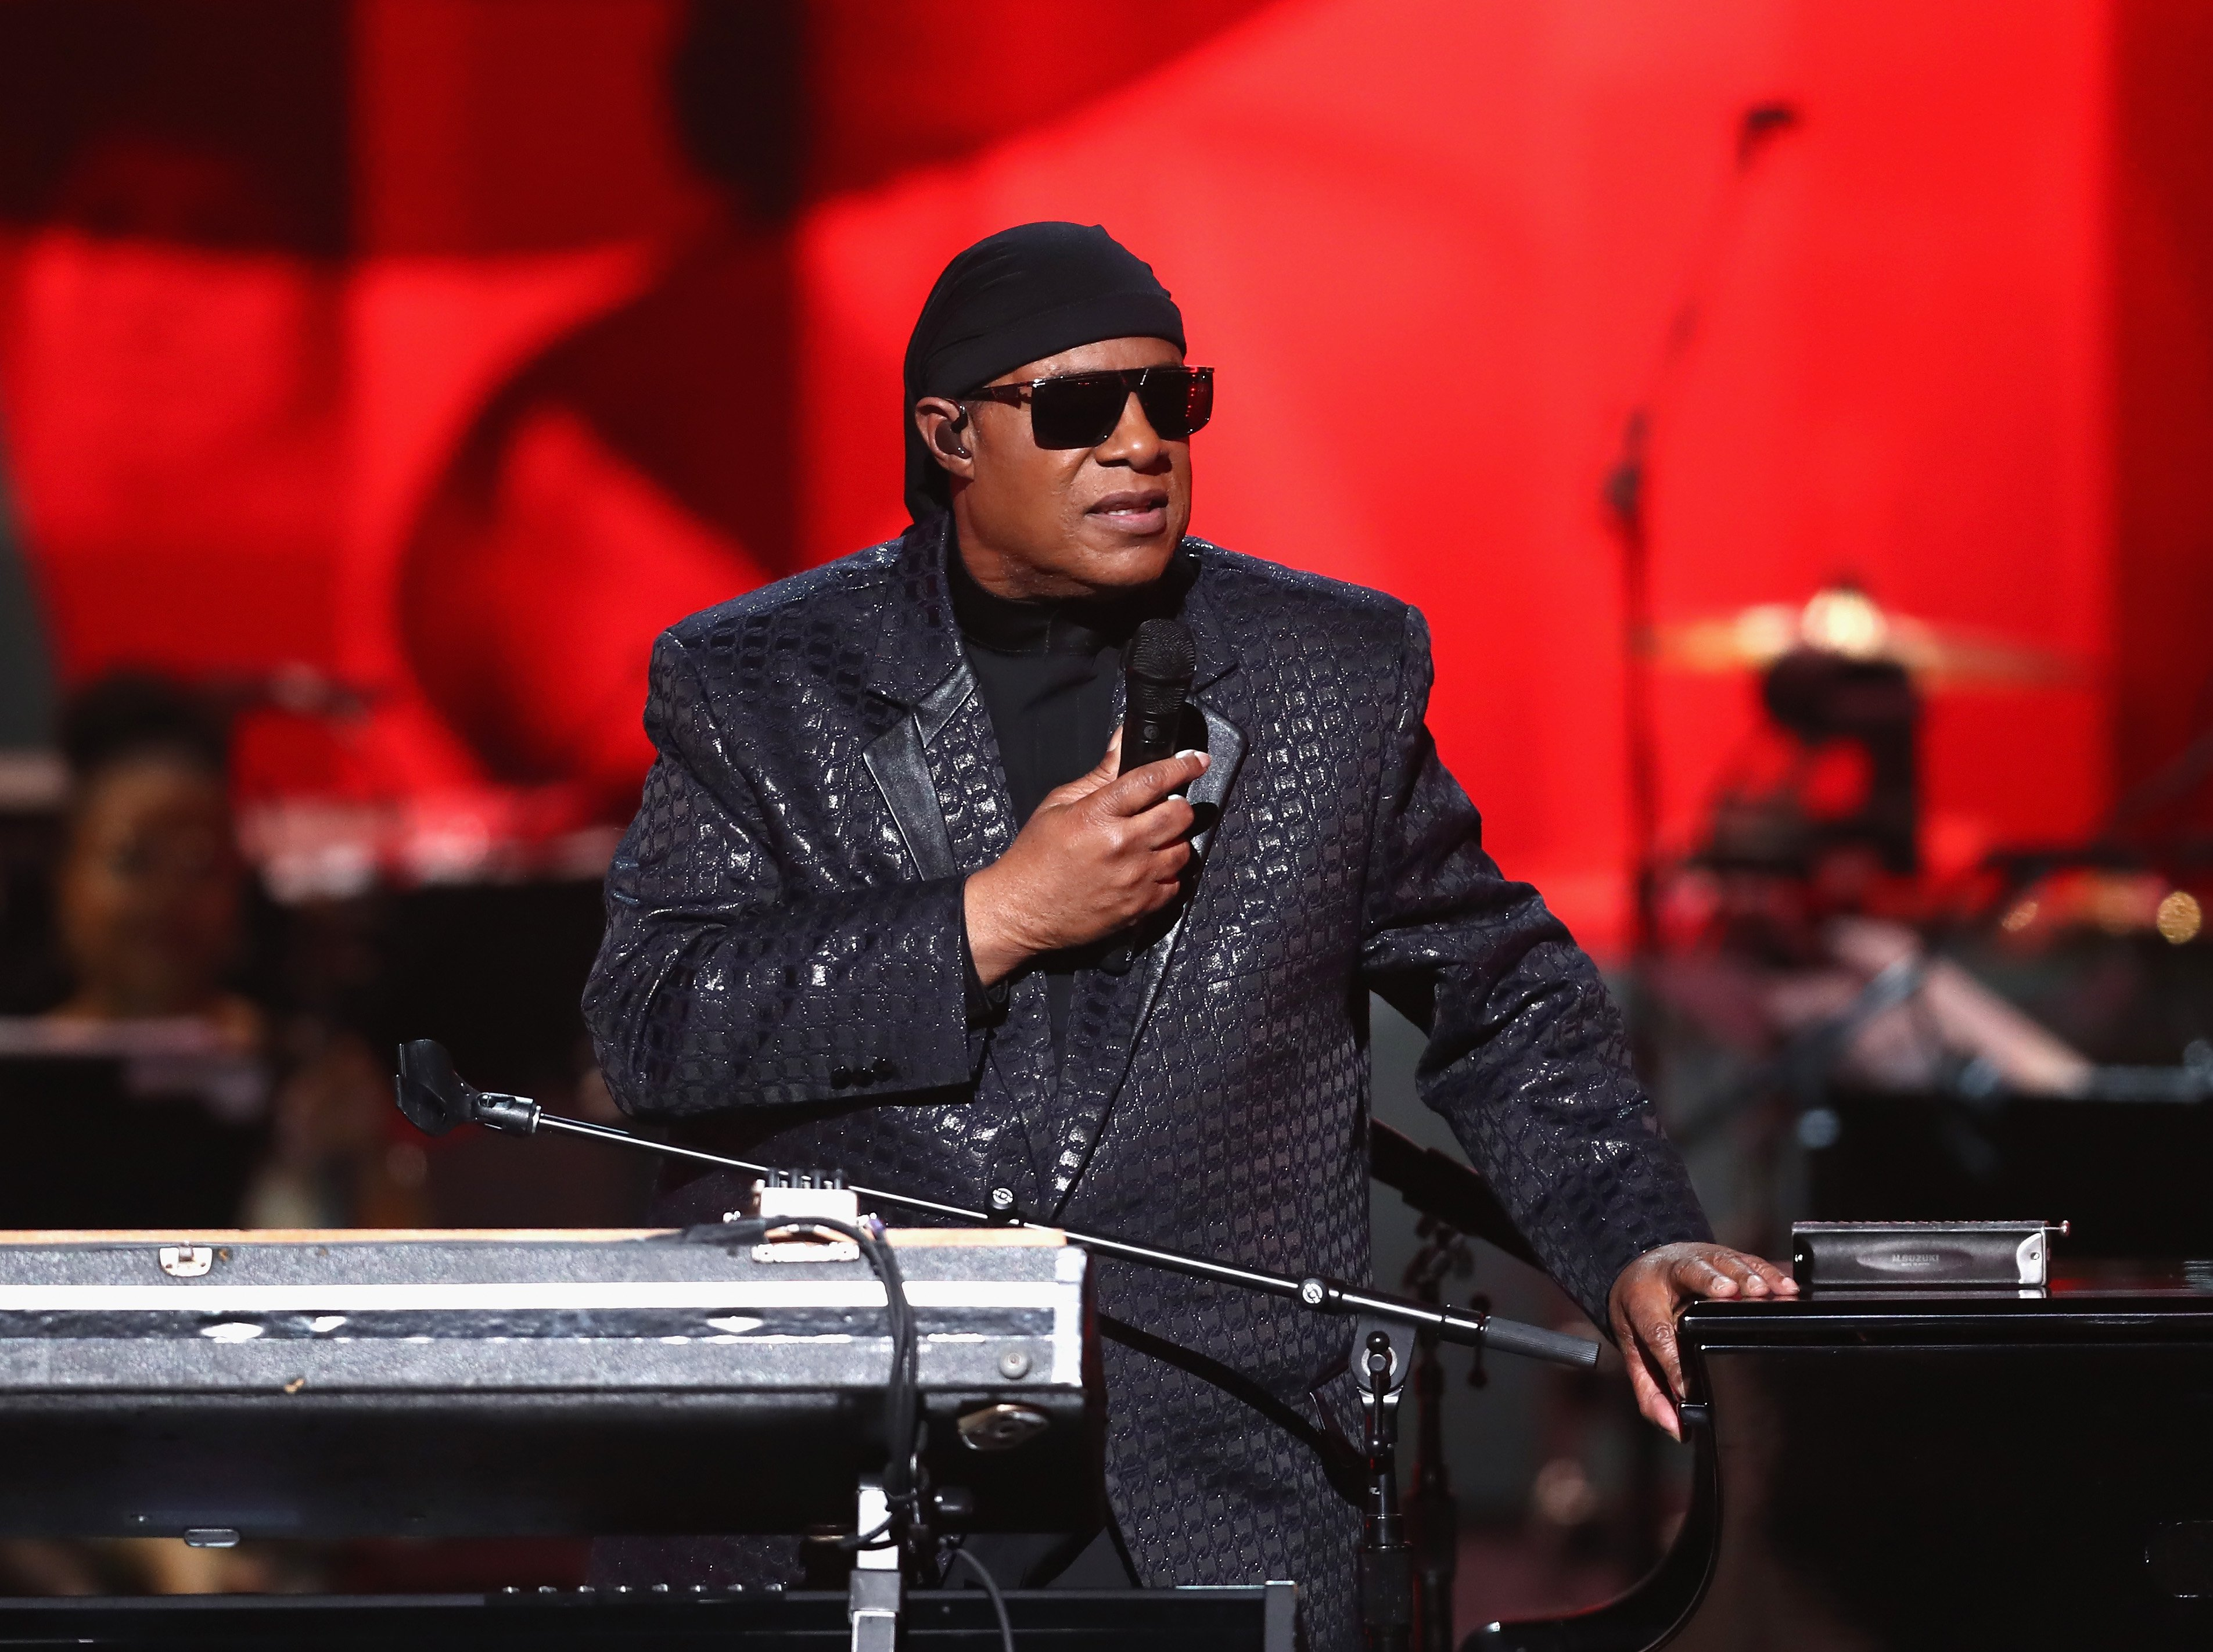 Stevie Wonder performs during Motown 60: A GRAMMY Celebration on Feb. 12, 2019 in California | Photos: Getty Images